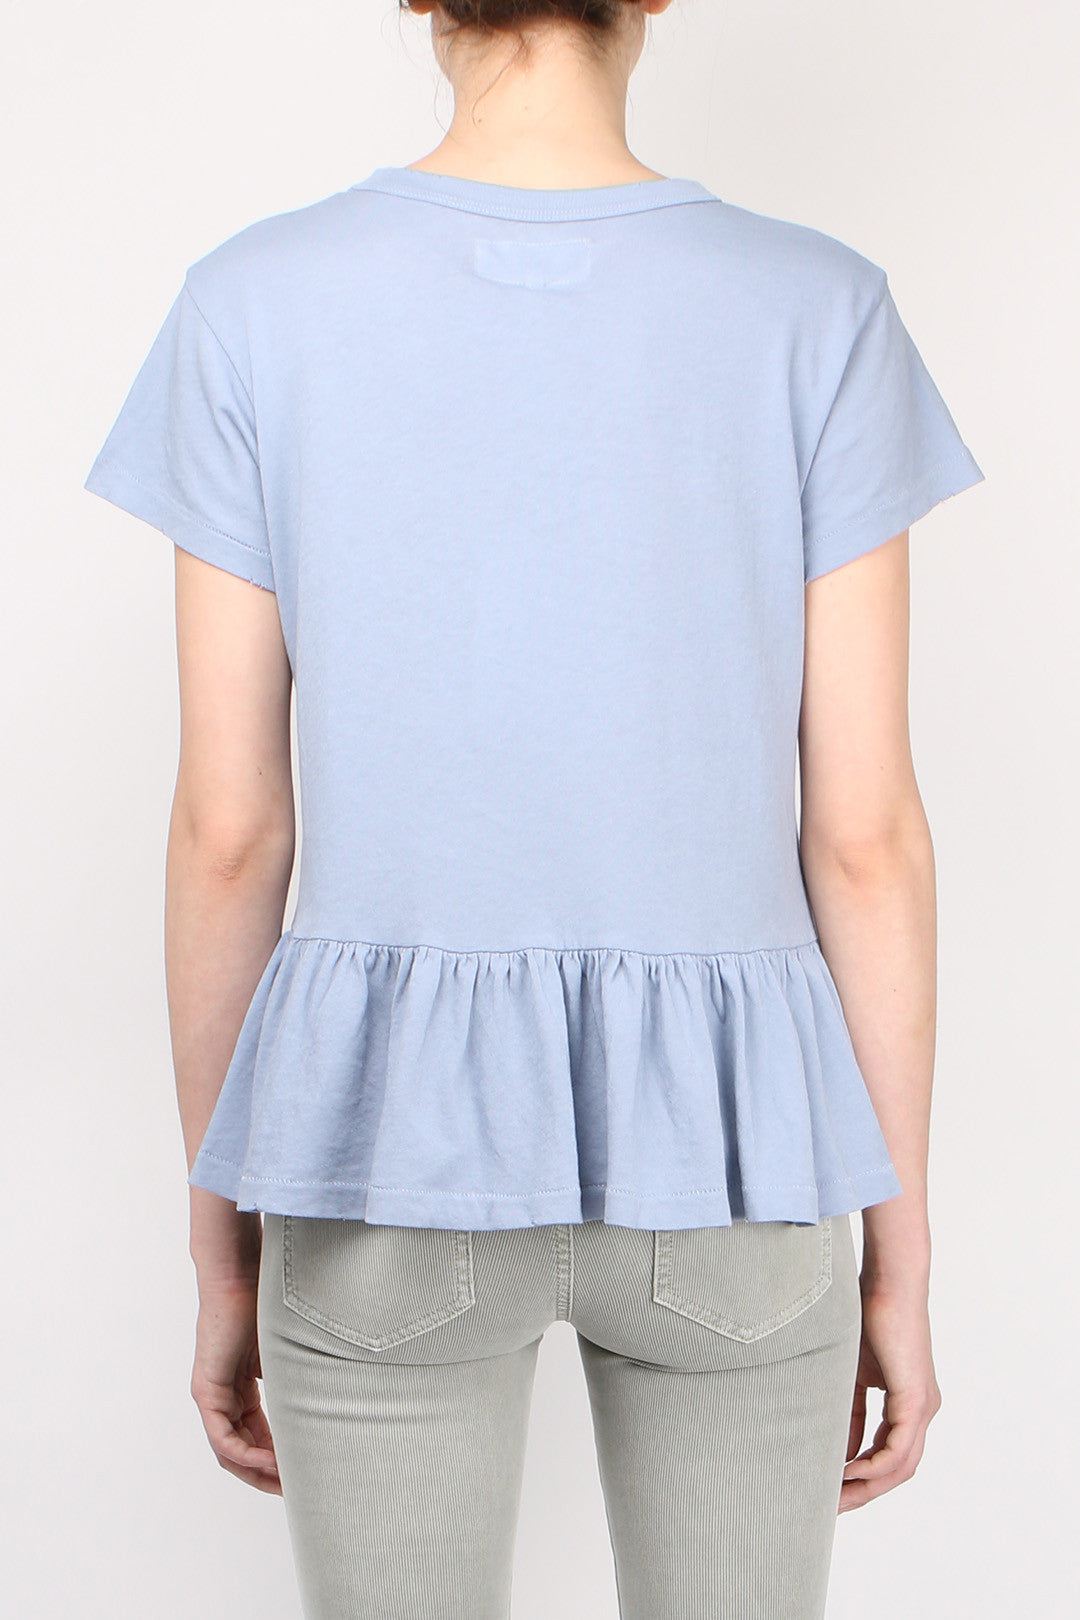 The Great Ruffle Tee Pale Blue